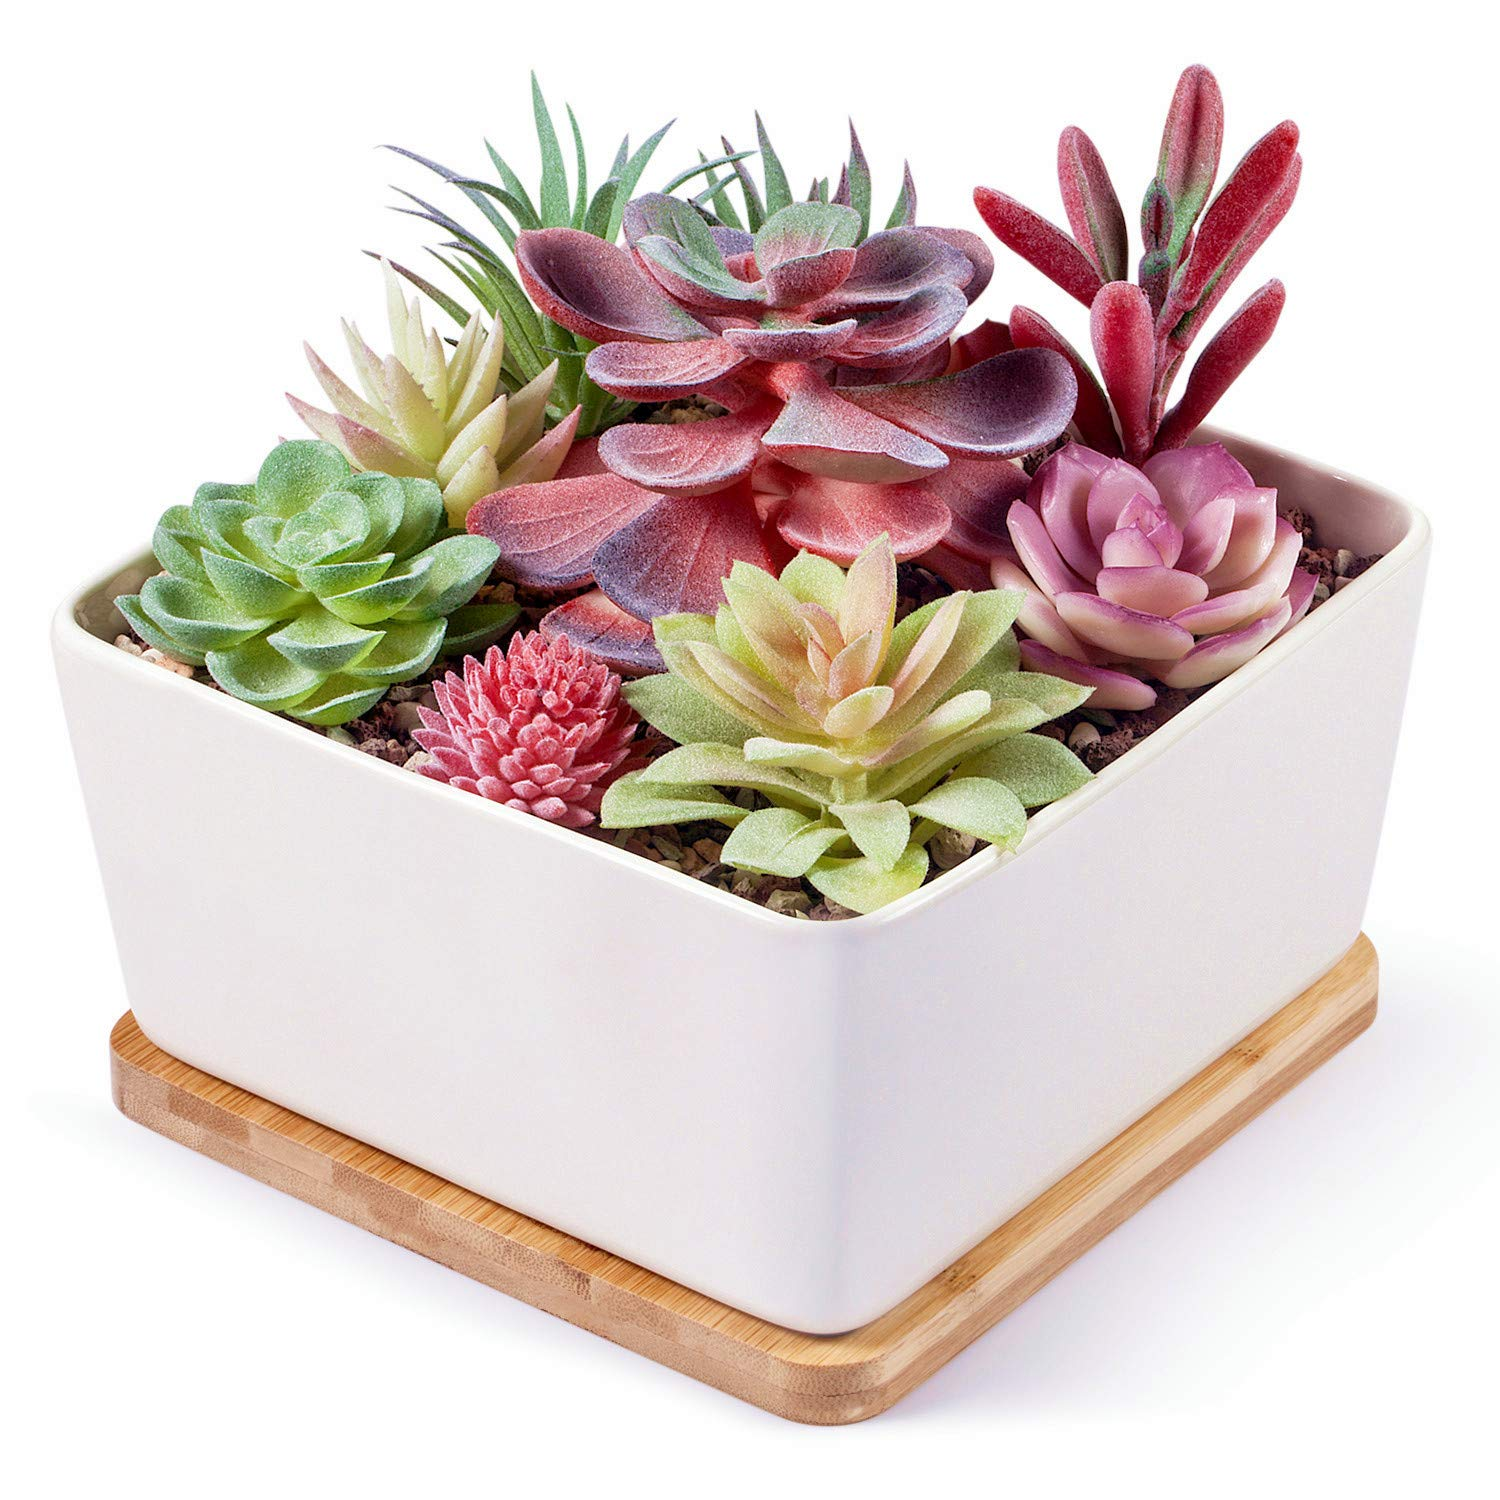 7 Inch Square White Ceramic Succulent Cactus Plants Planter Pot with Drainage Bamboo Tray (Large)